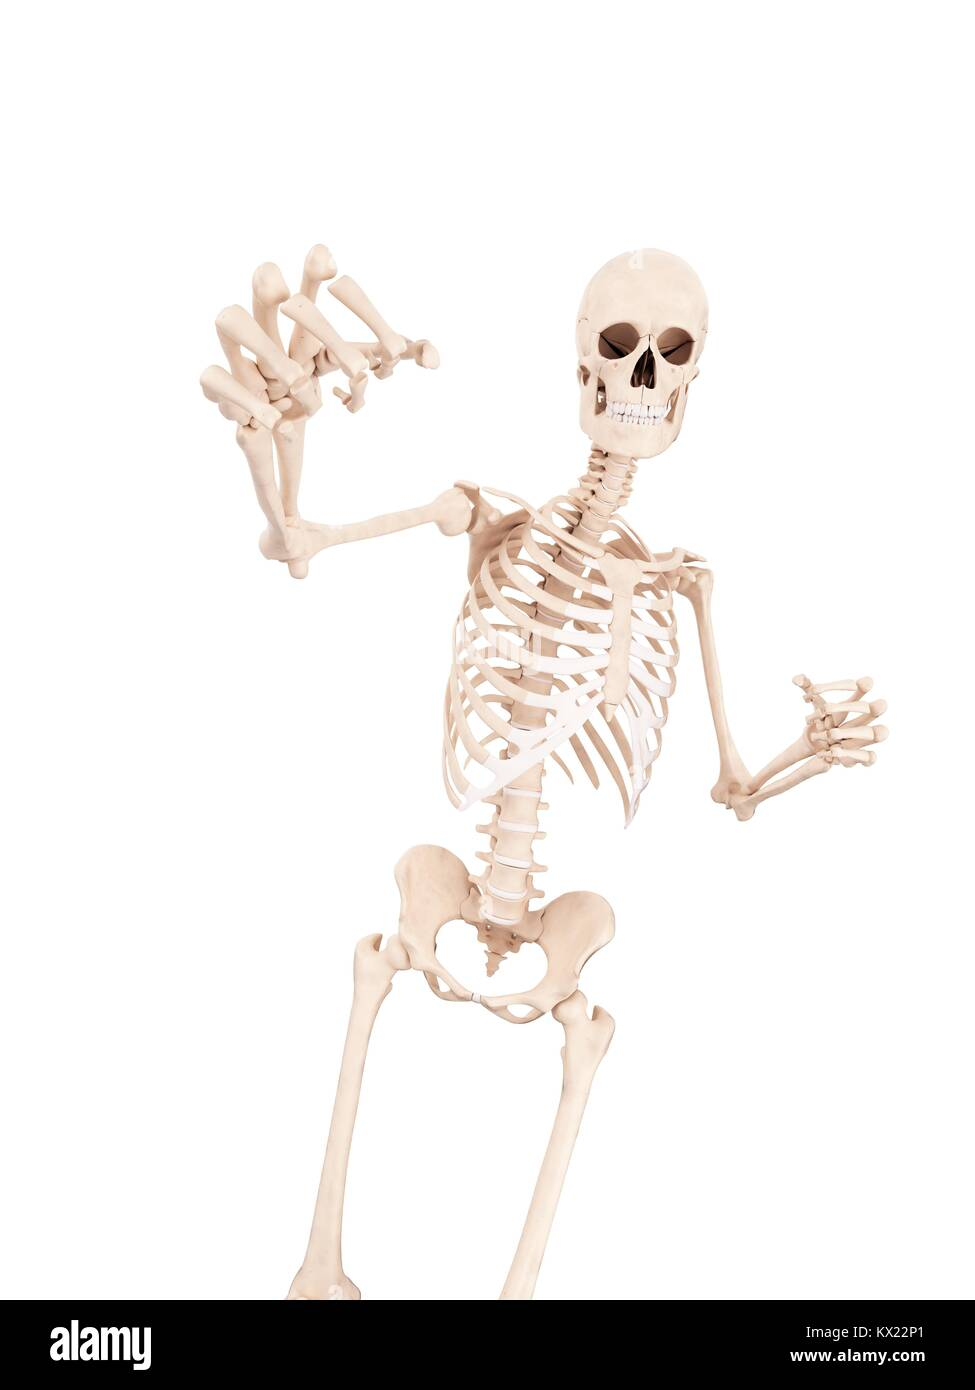 Boxers Skeletal Structure Stock Photos Boxers Skeletal Structure